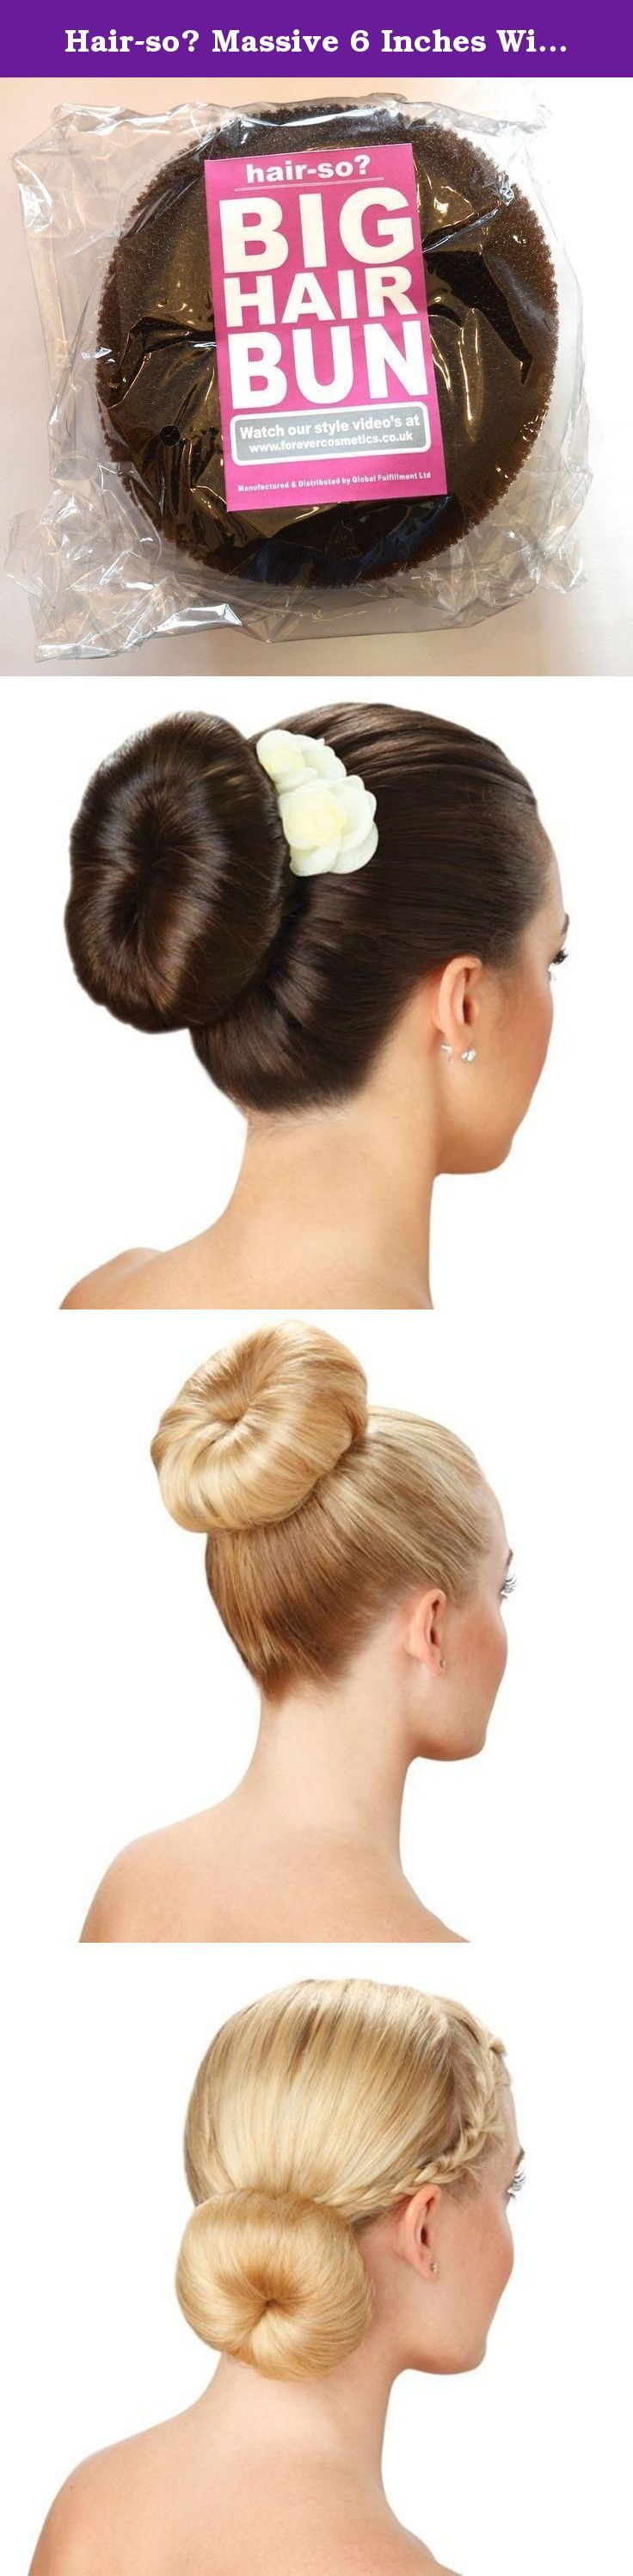 Hair-so? Massive 6 Inches Wide Big Hair Bun Extra Large Hair Doughnut Donut Bridal Wedding Hollywood Hair Style Bun Ring - Choose Colour- Brown, Black or Blonde (Brown). With the Unrivalled Massive 6 Inch Wide BIG HAIR BUN by hair-so? you can get a glamorous updo in minutes. This trend is hugely popular with celebrities like Amy Childs and now you can easily get the look at home. Simply tie your hair up in a ponytail, place this bun ring around it and then pin the hair over for instant...